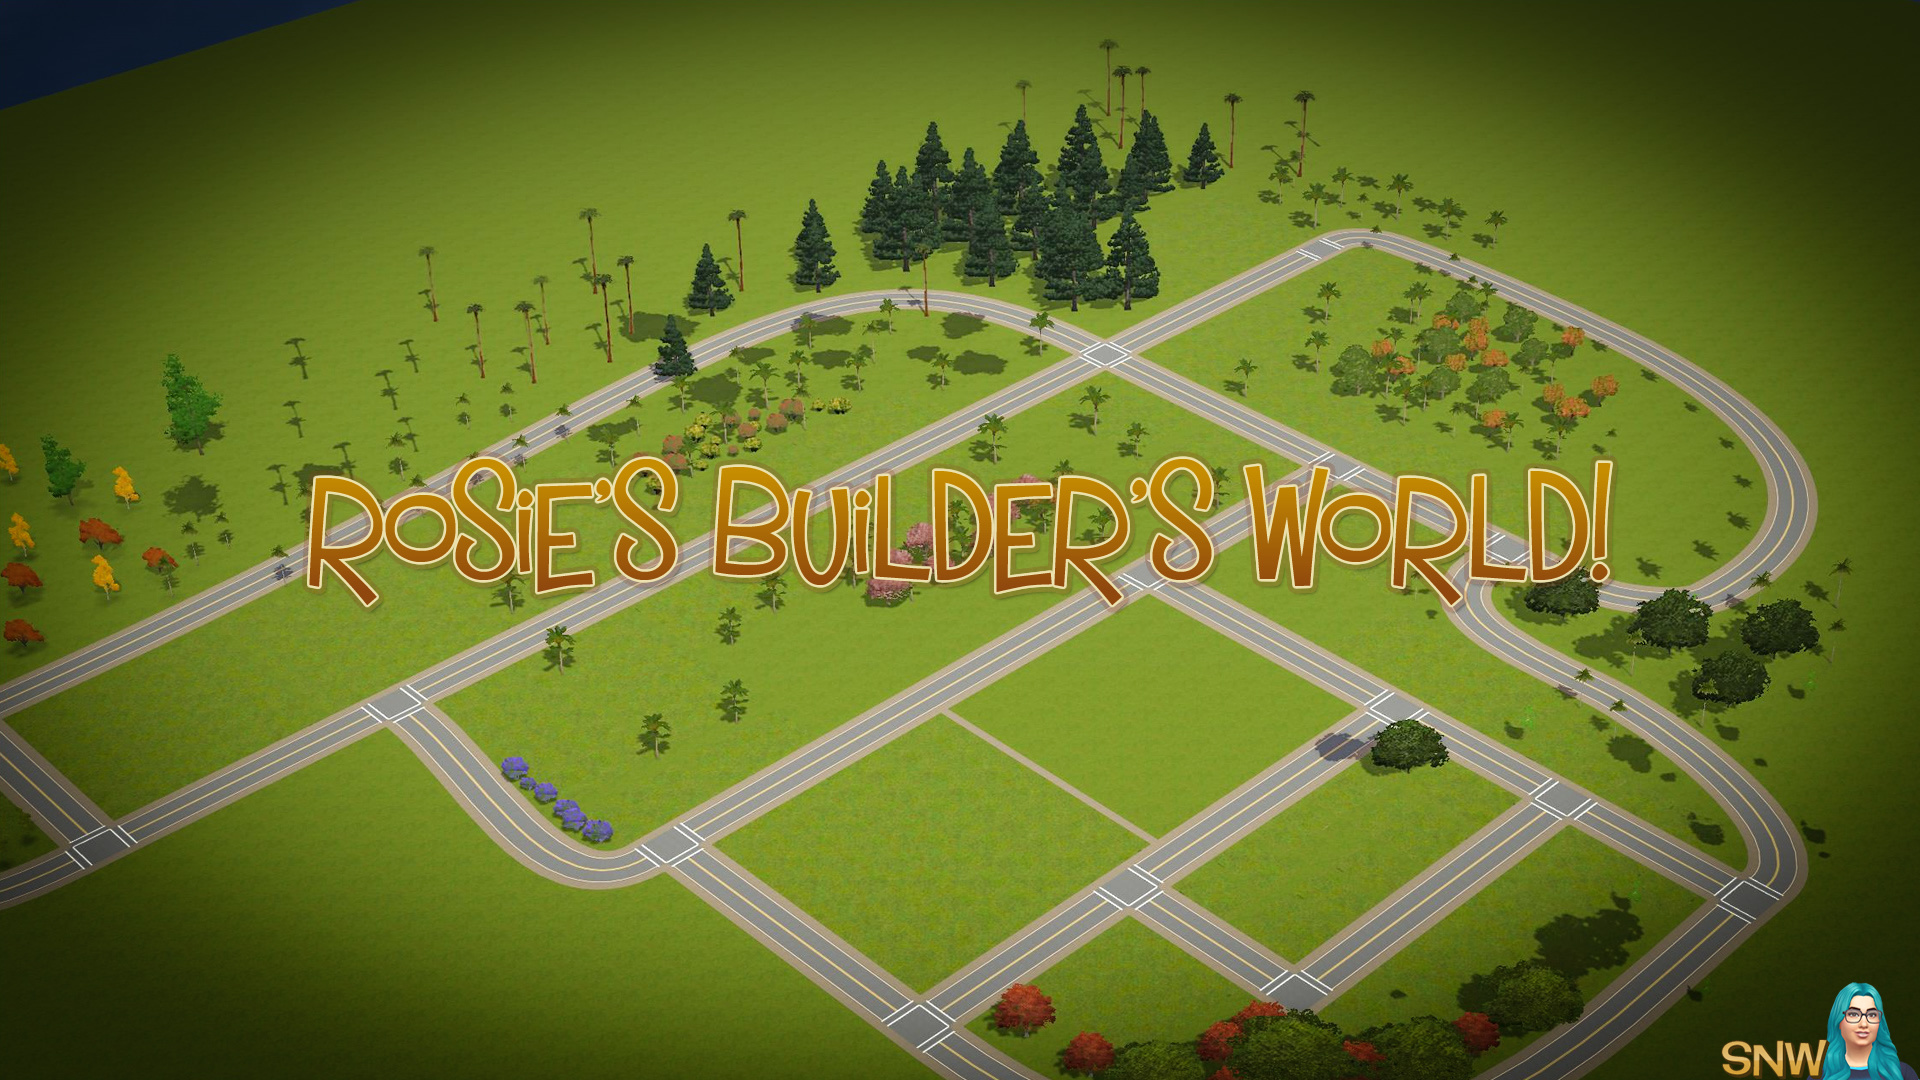 Rosie's Builder's World